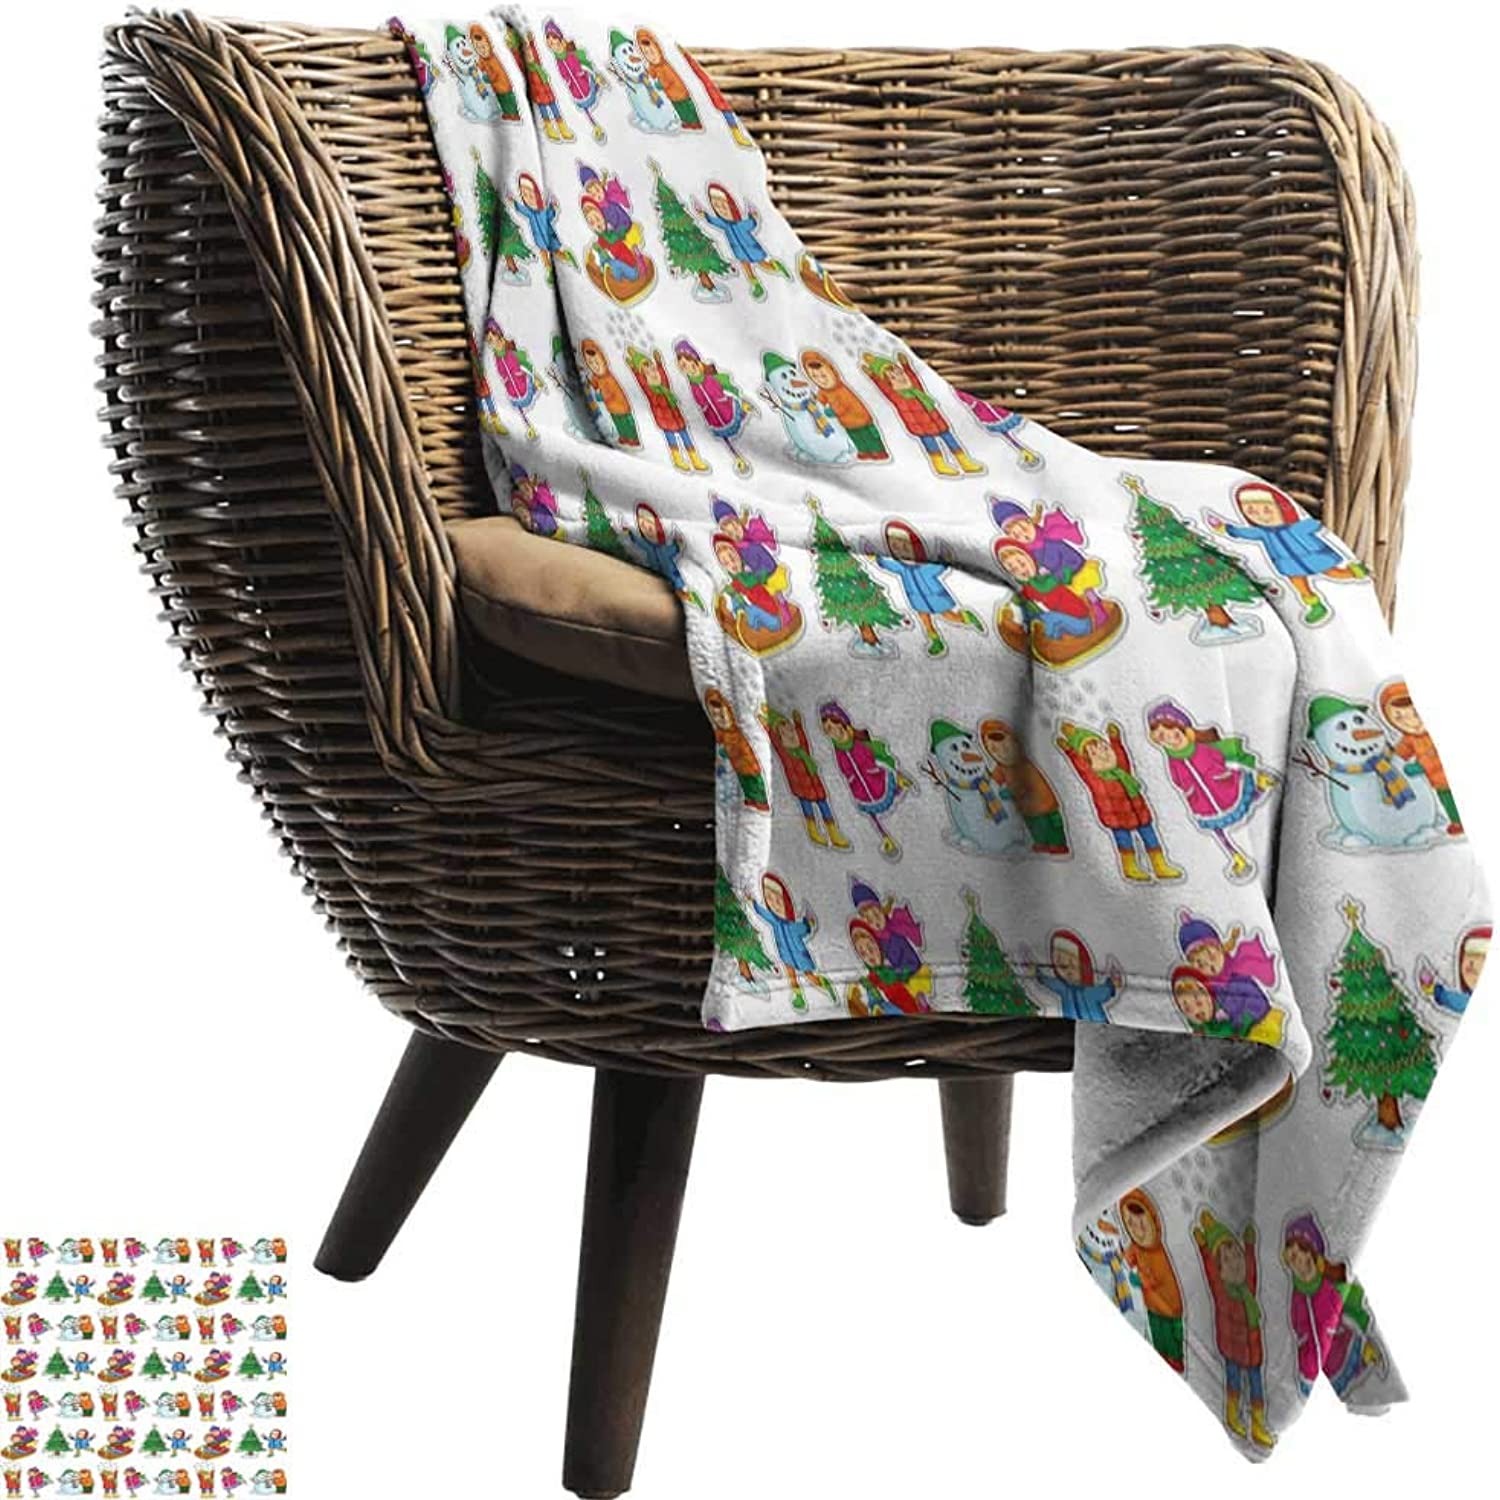 Outdoor Blanket,Winter,Kids in Winter Clothes Building Snowman Sledding and Christmas Tree Happy Times,300GSM,Super Soft and Warm,Durable Throw Blanket 35 x60